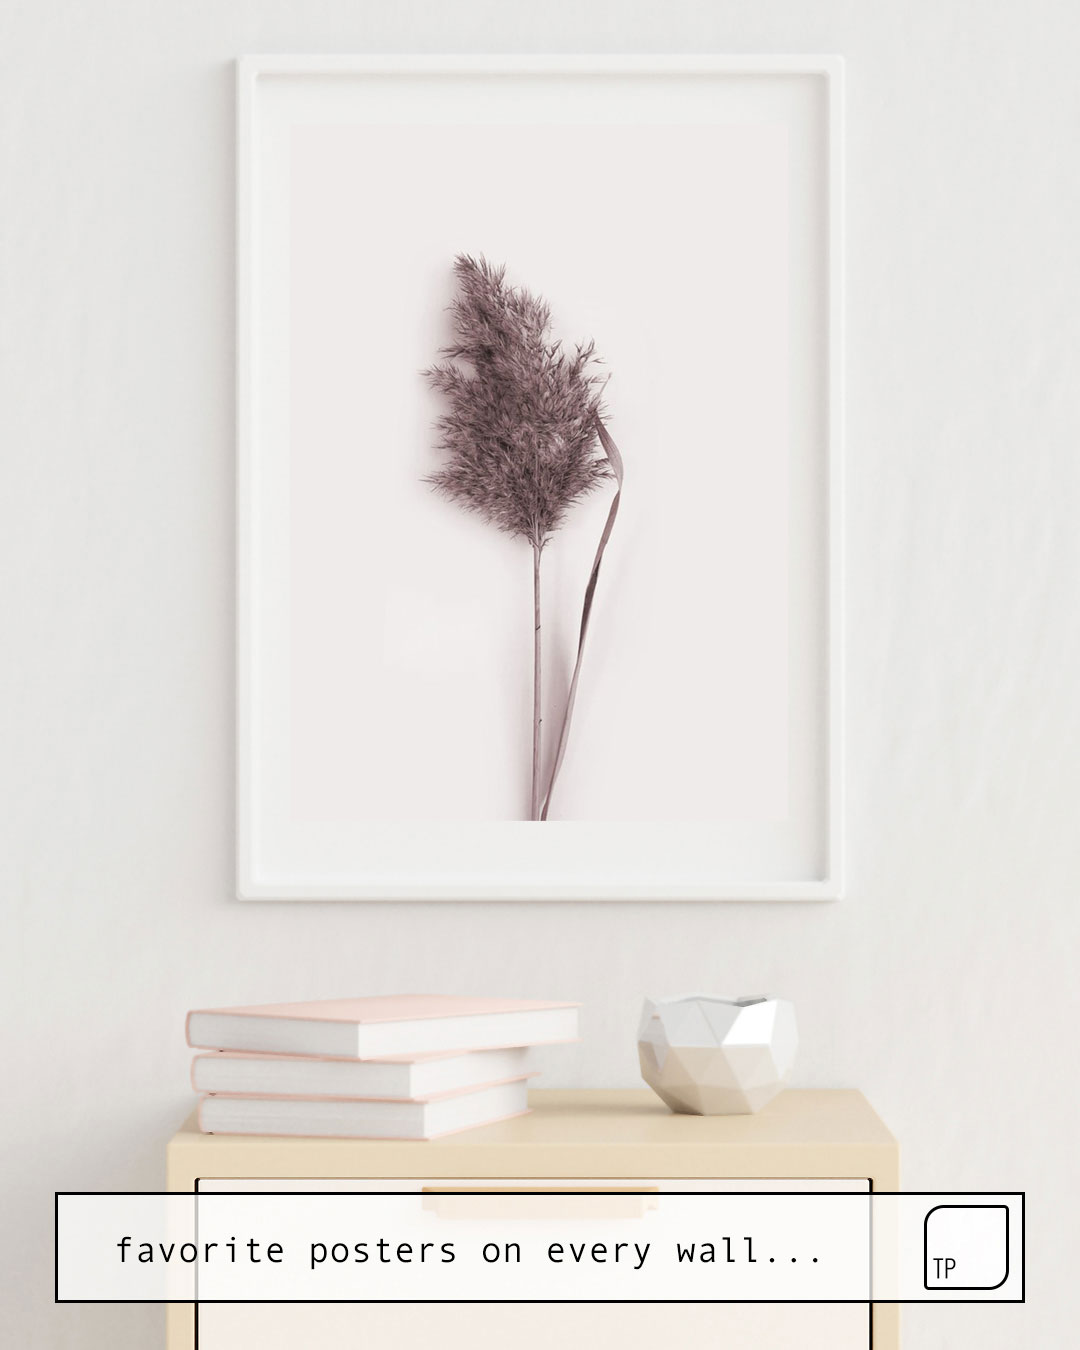 La photo montre un exemple d'ameublement avec le motif DRIED PAMPAS GRASS par Art by ASolo comme peinture murale